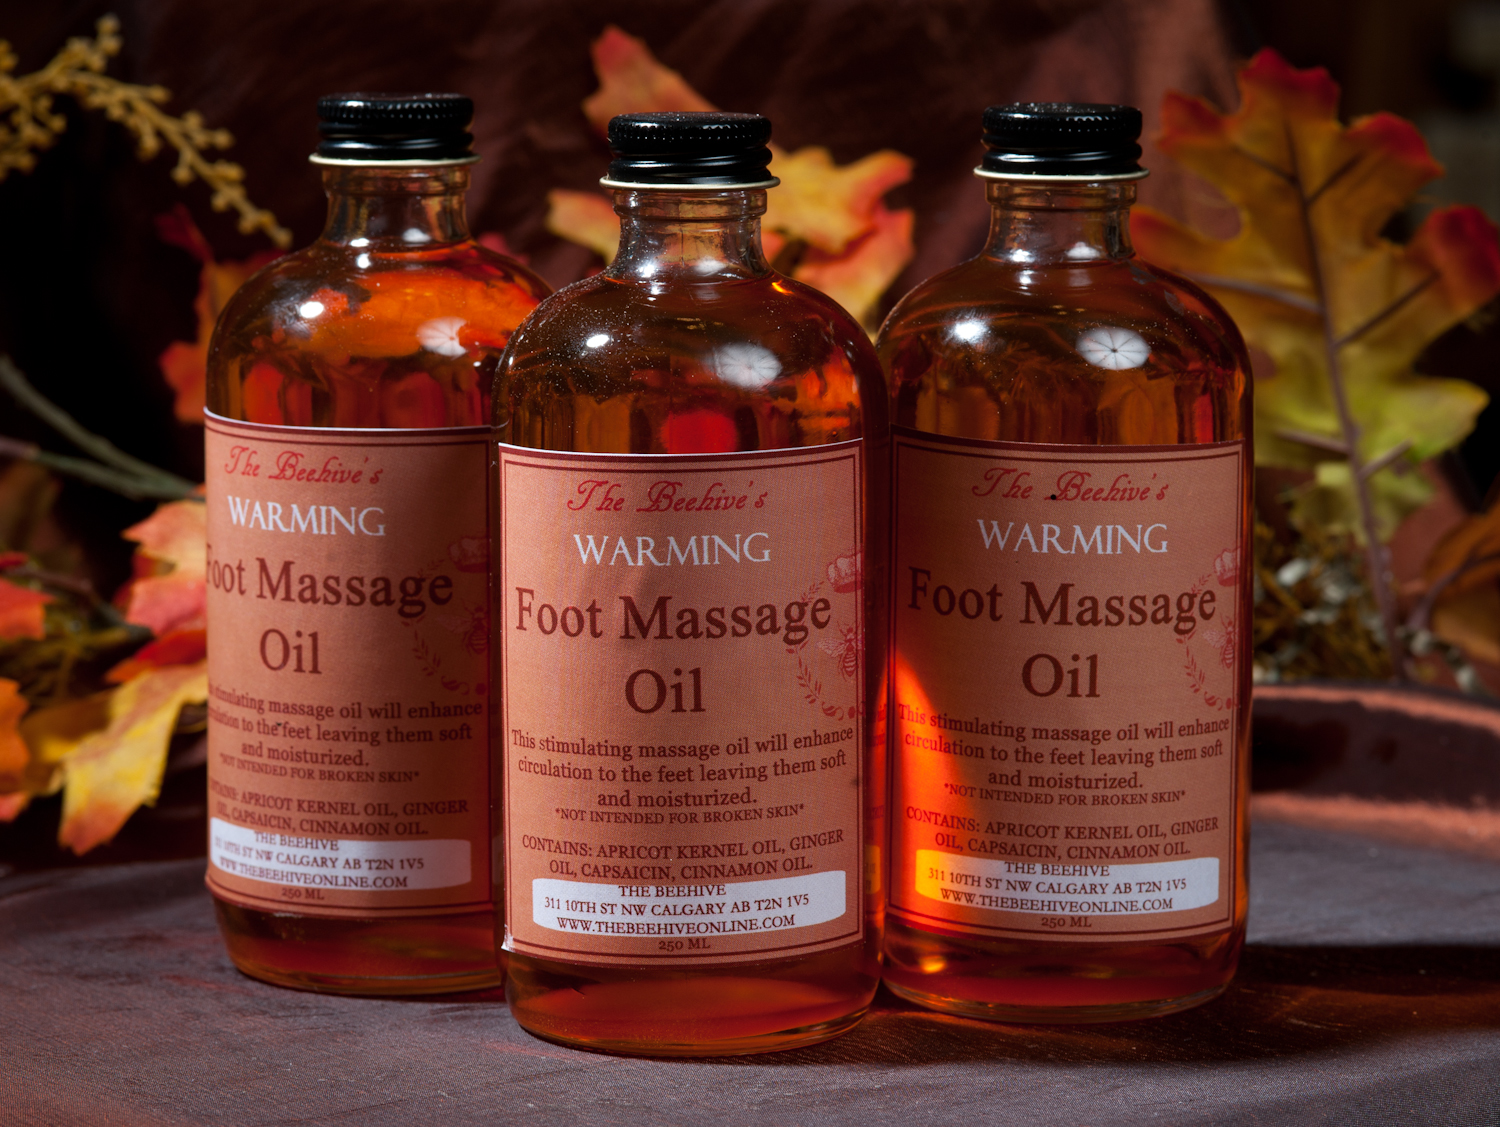 Warming Foot Massage Oil